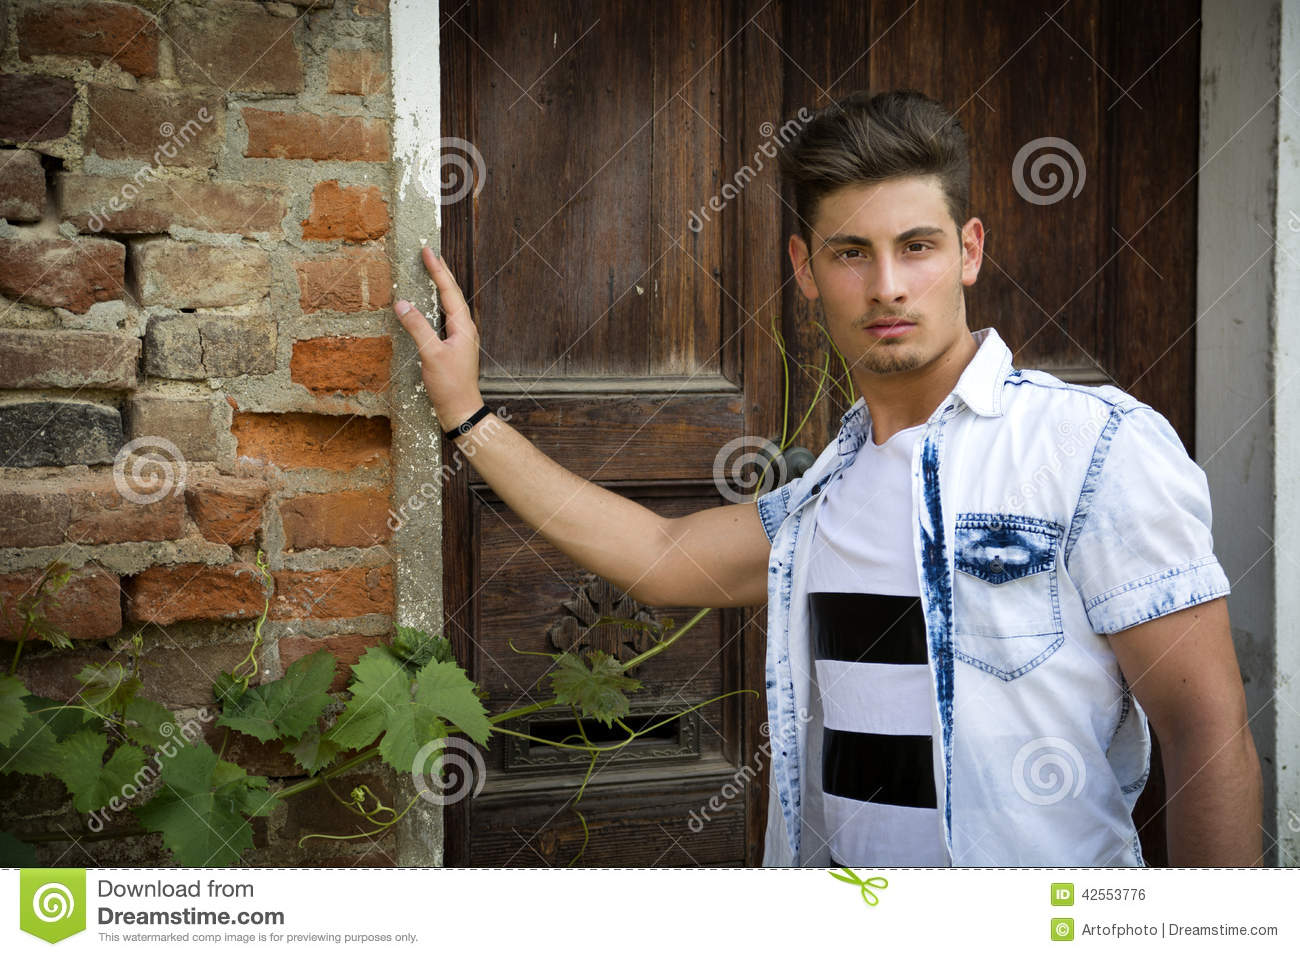 Handsome young man outdoors in front of old house